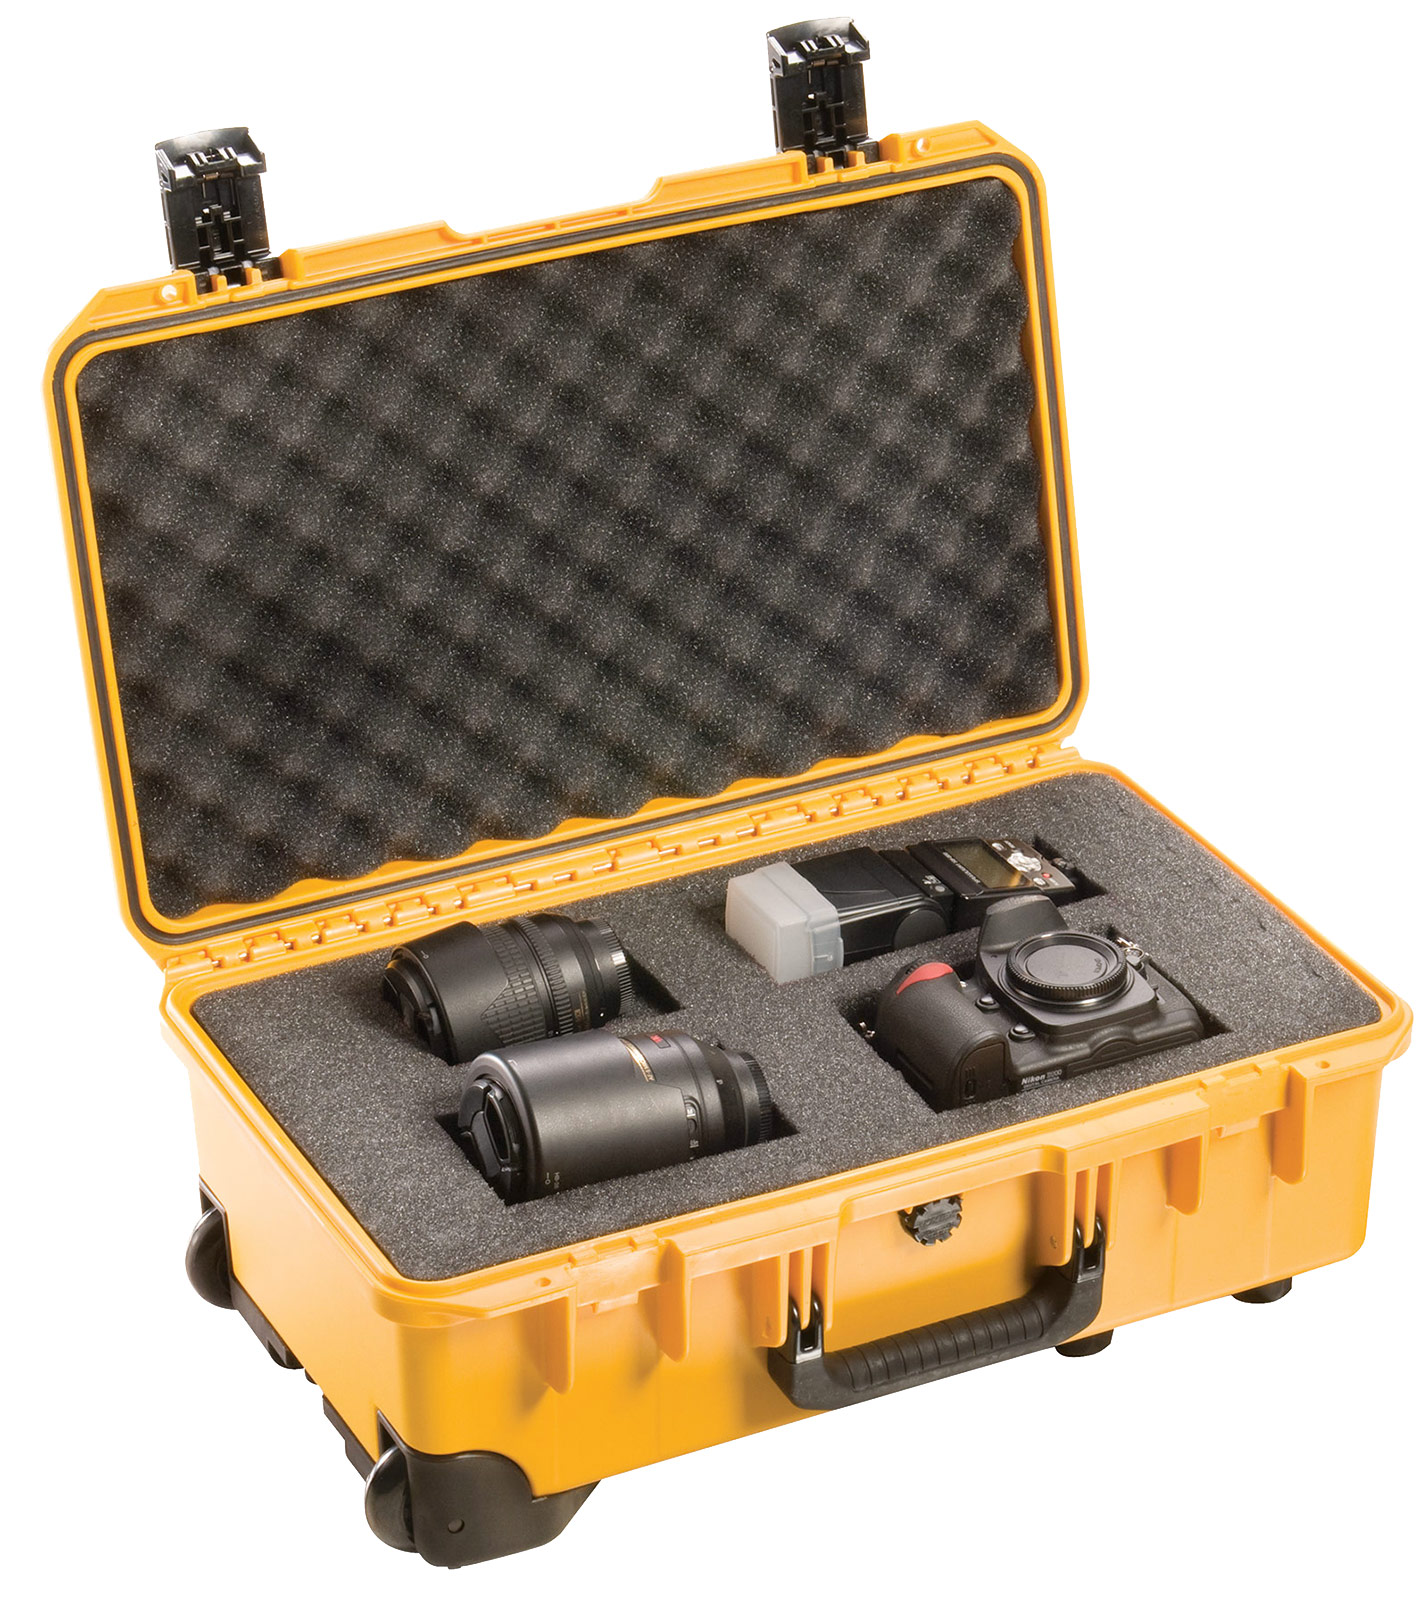 pelican im2500 dslr camera accessory case